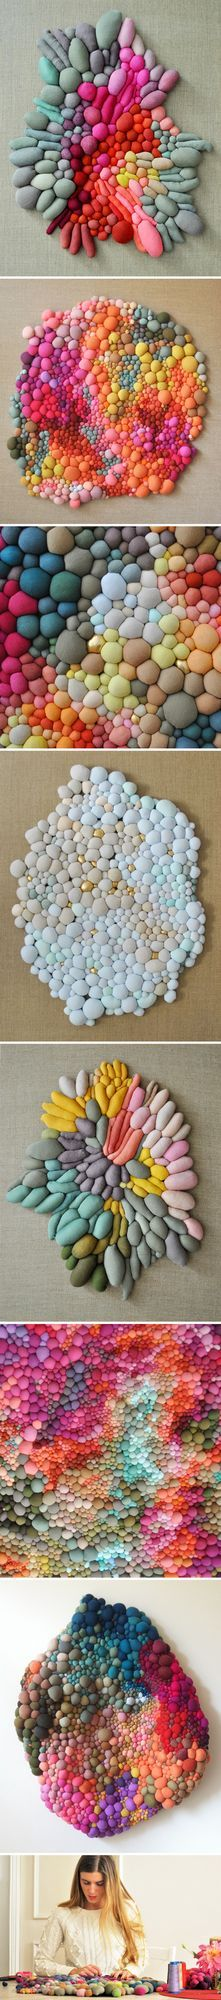 Gasp! So many colors, and oh so many little balls of hand-sewn goodness hanging on the wall! This is the organic/organized work of Chilean artist Serena Garcia Dalla Venezi. I can't decide if I want t